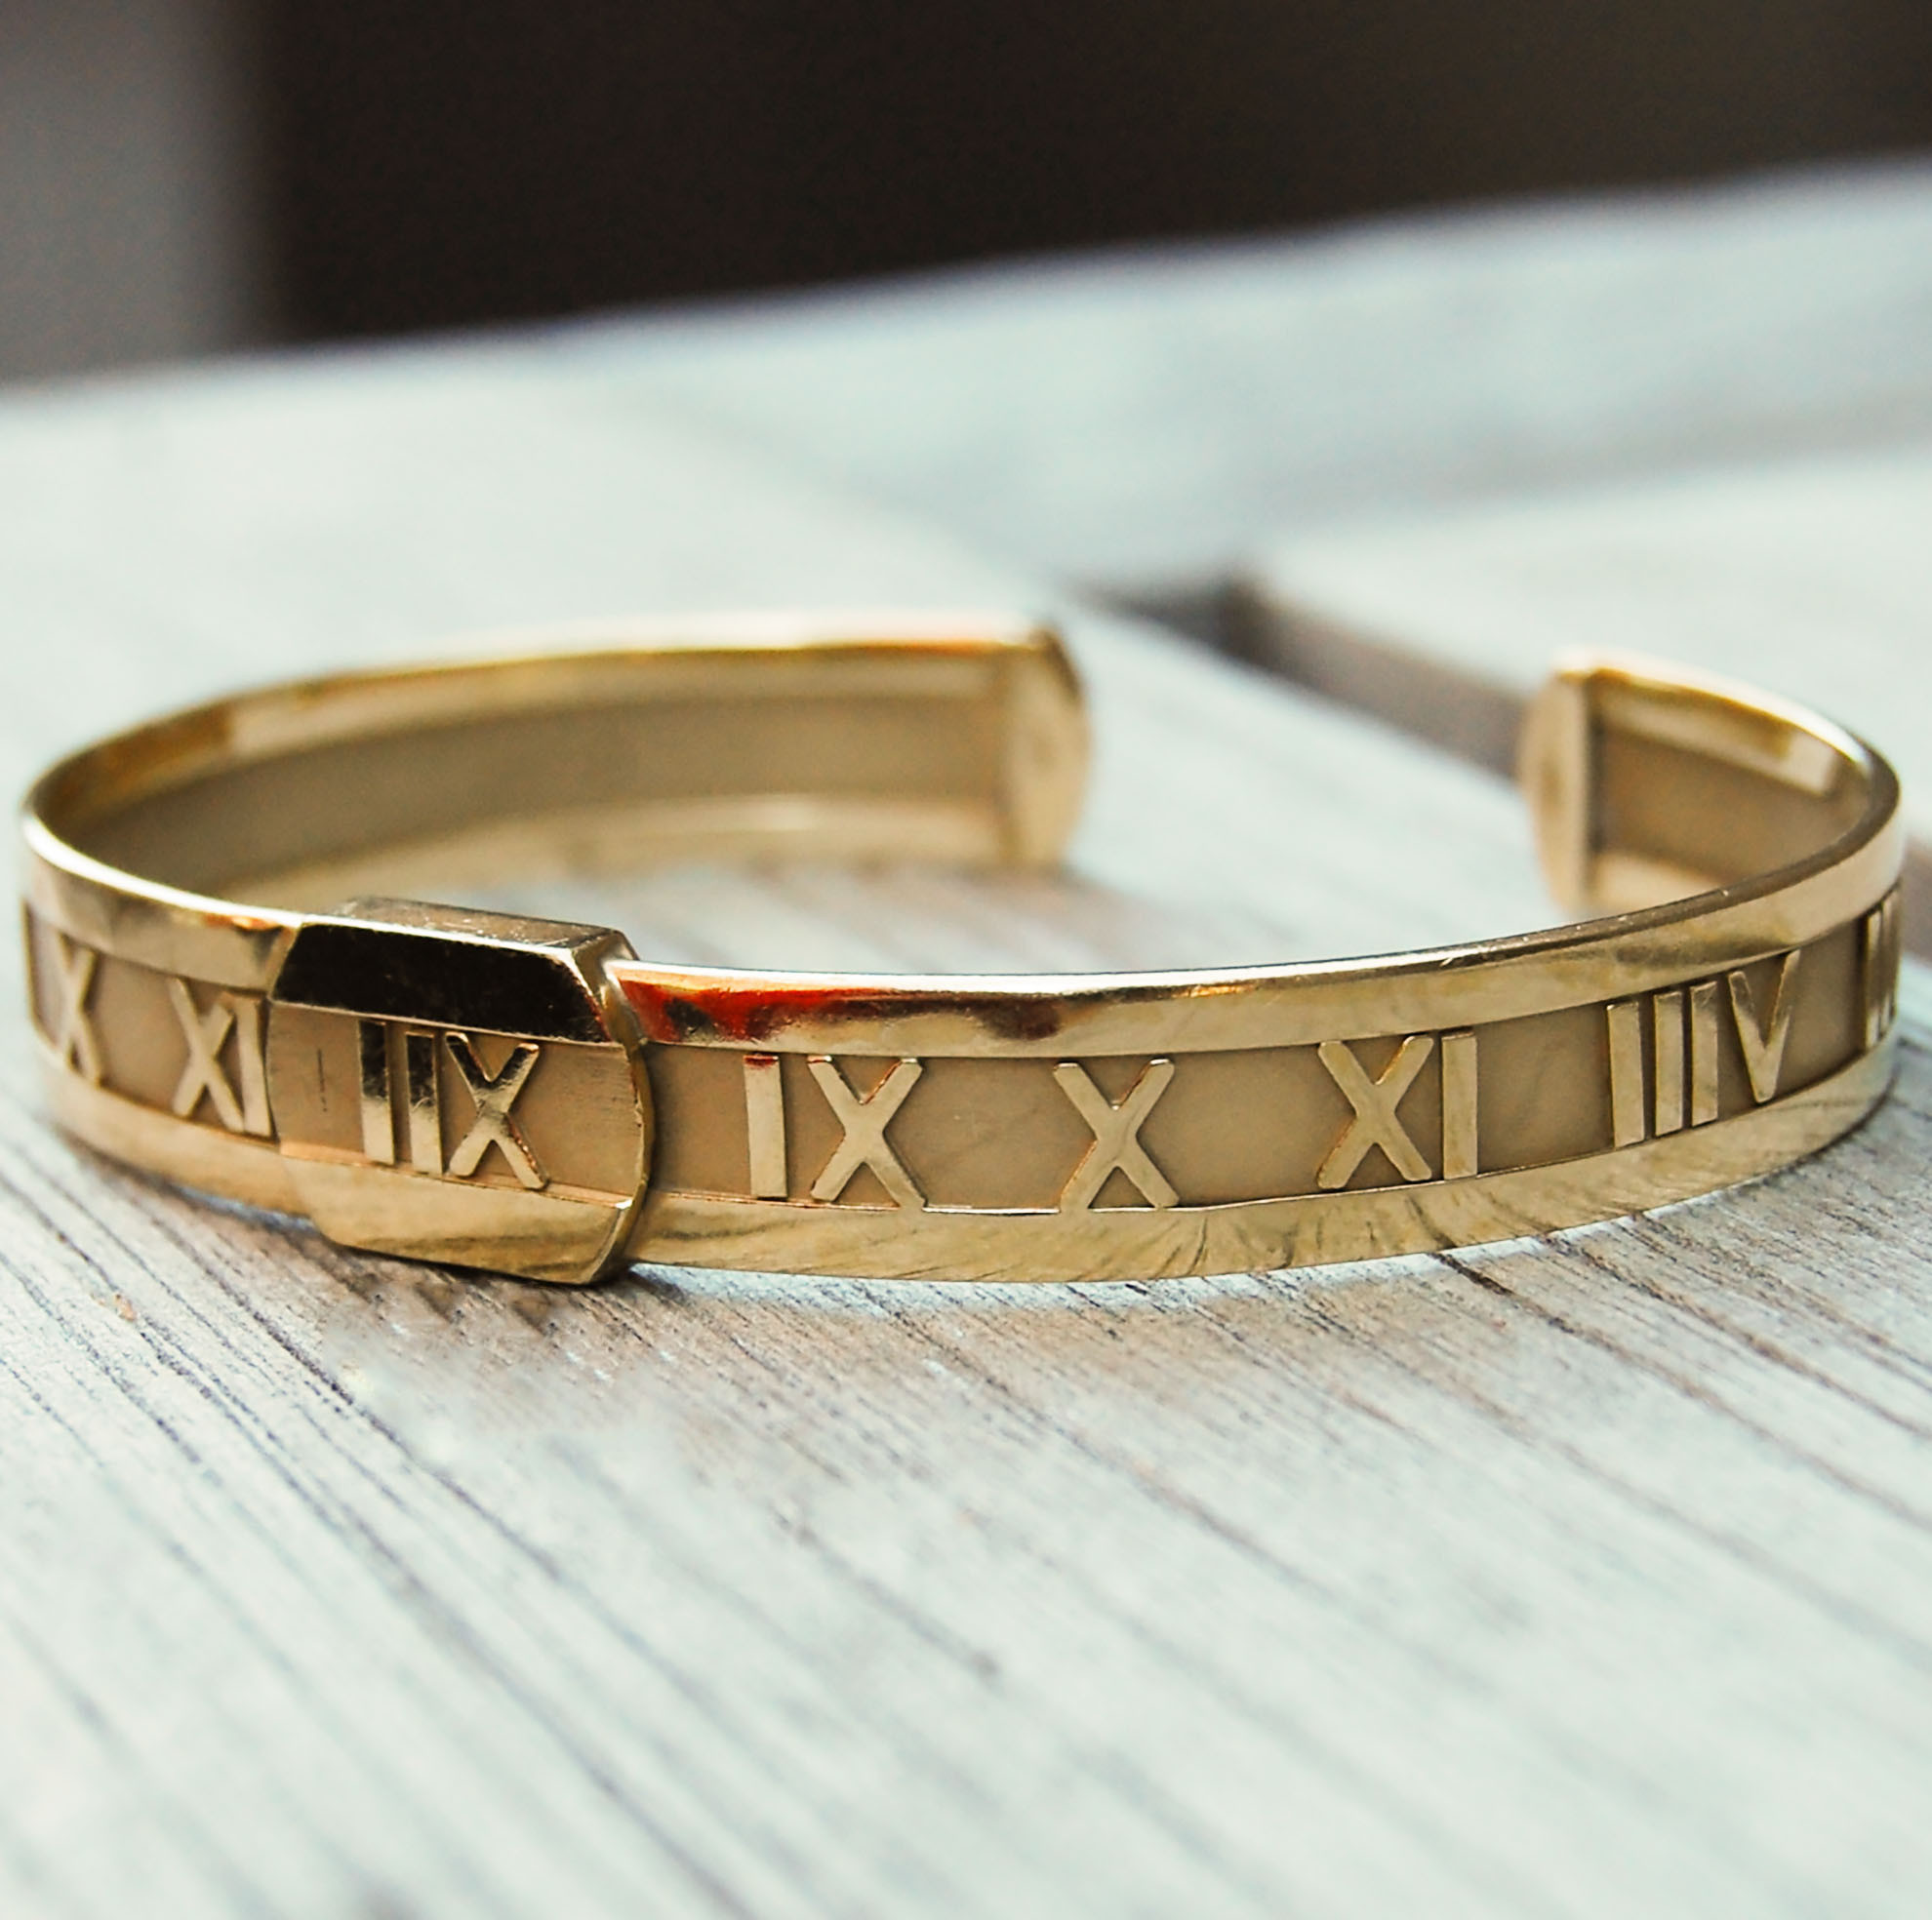 e4676aa25 SOLD ~ Vintage Gold Tiffany-Inspired Roman Numeral Cuff with Matching Ring.  Vintage Jewelry, Vintage Bracelets, Restored Gold and Silver Bracelets, ...